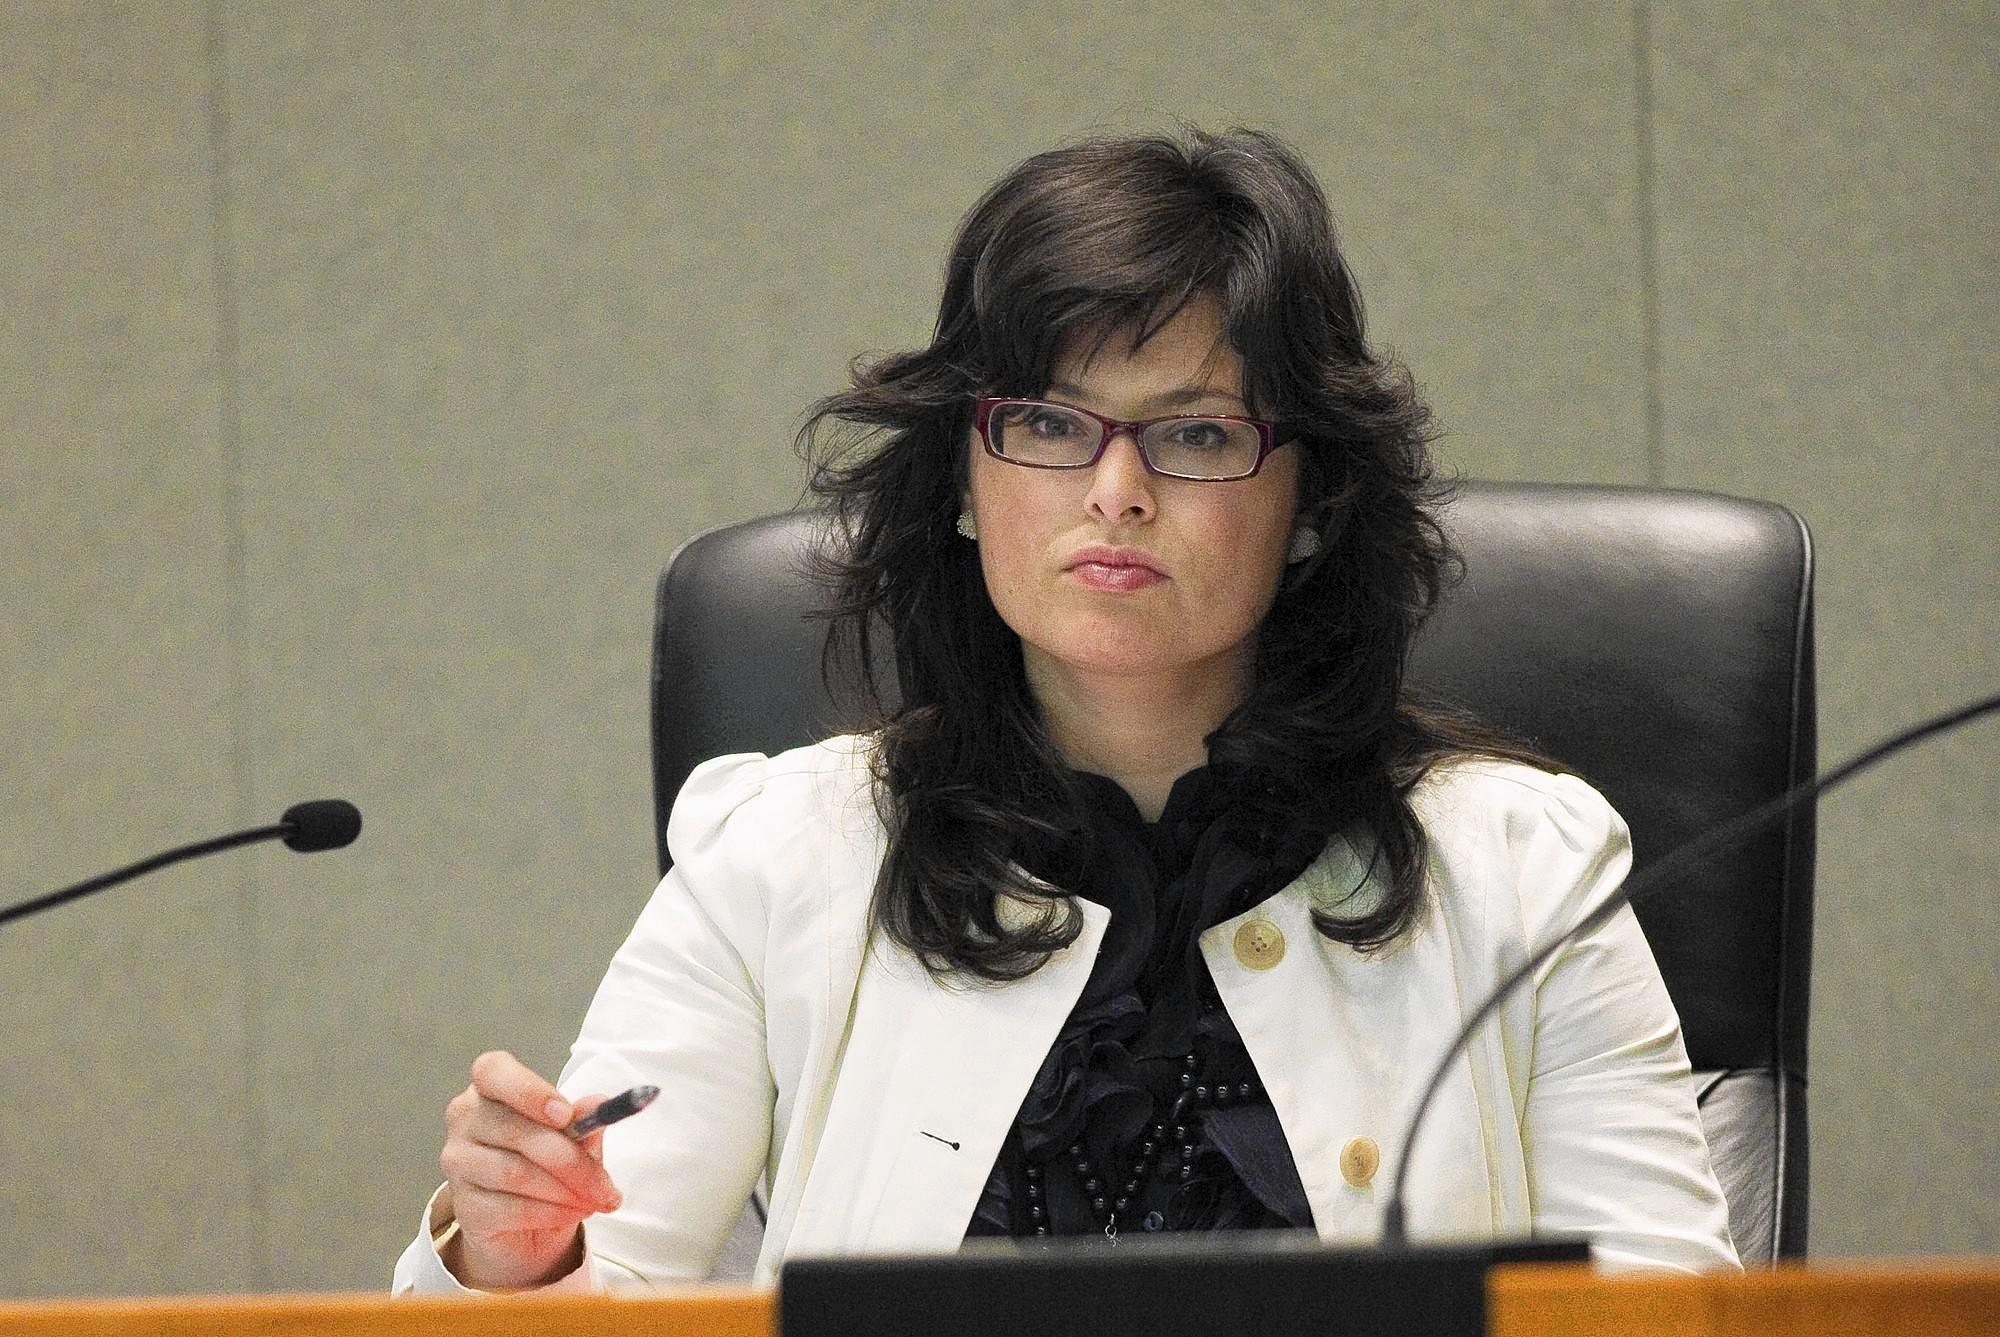 Priya Mathur, a longtime member of the California Public Employees' Retirement System Board of Administration, is in trouble again with the Fair Political Practices Commission for failing to file timely reports.